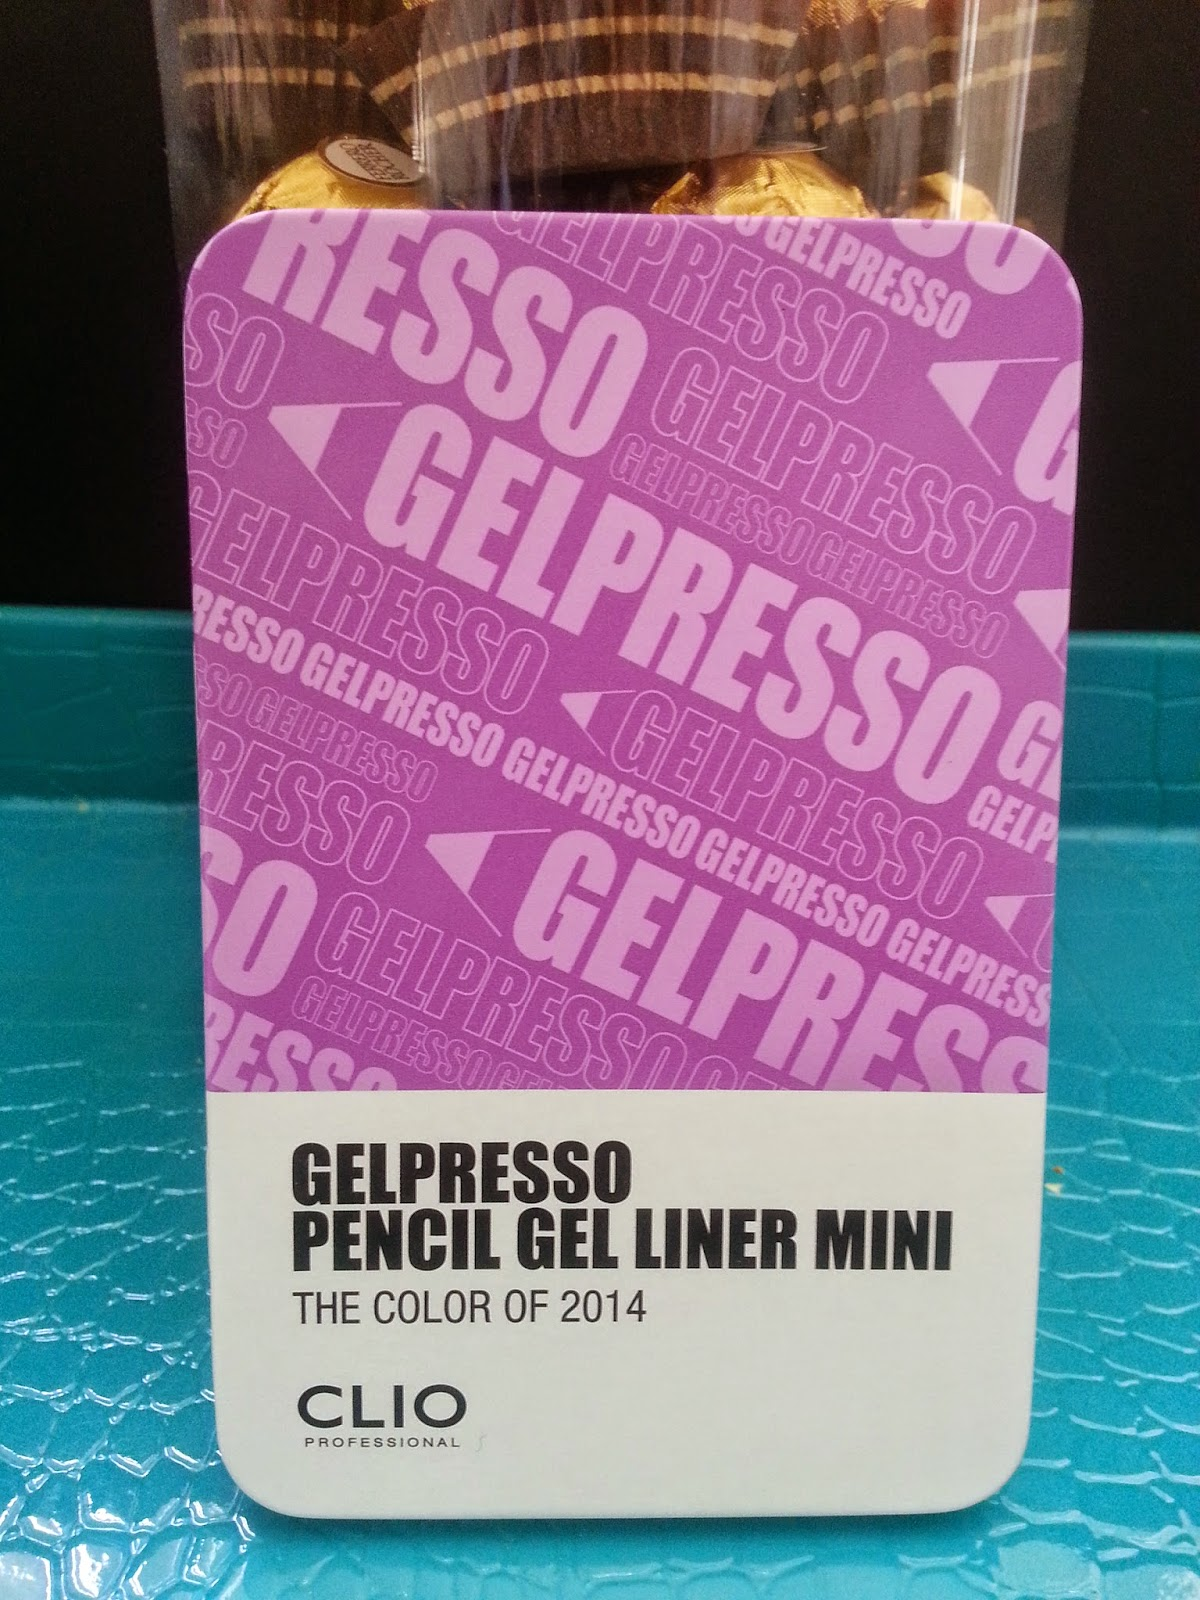 Clio Gelpresso Pencil Gel Liner Mini